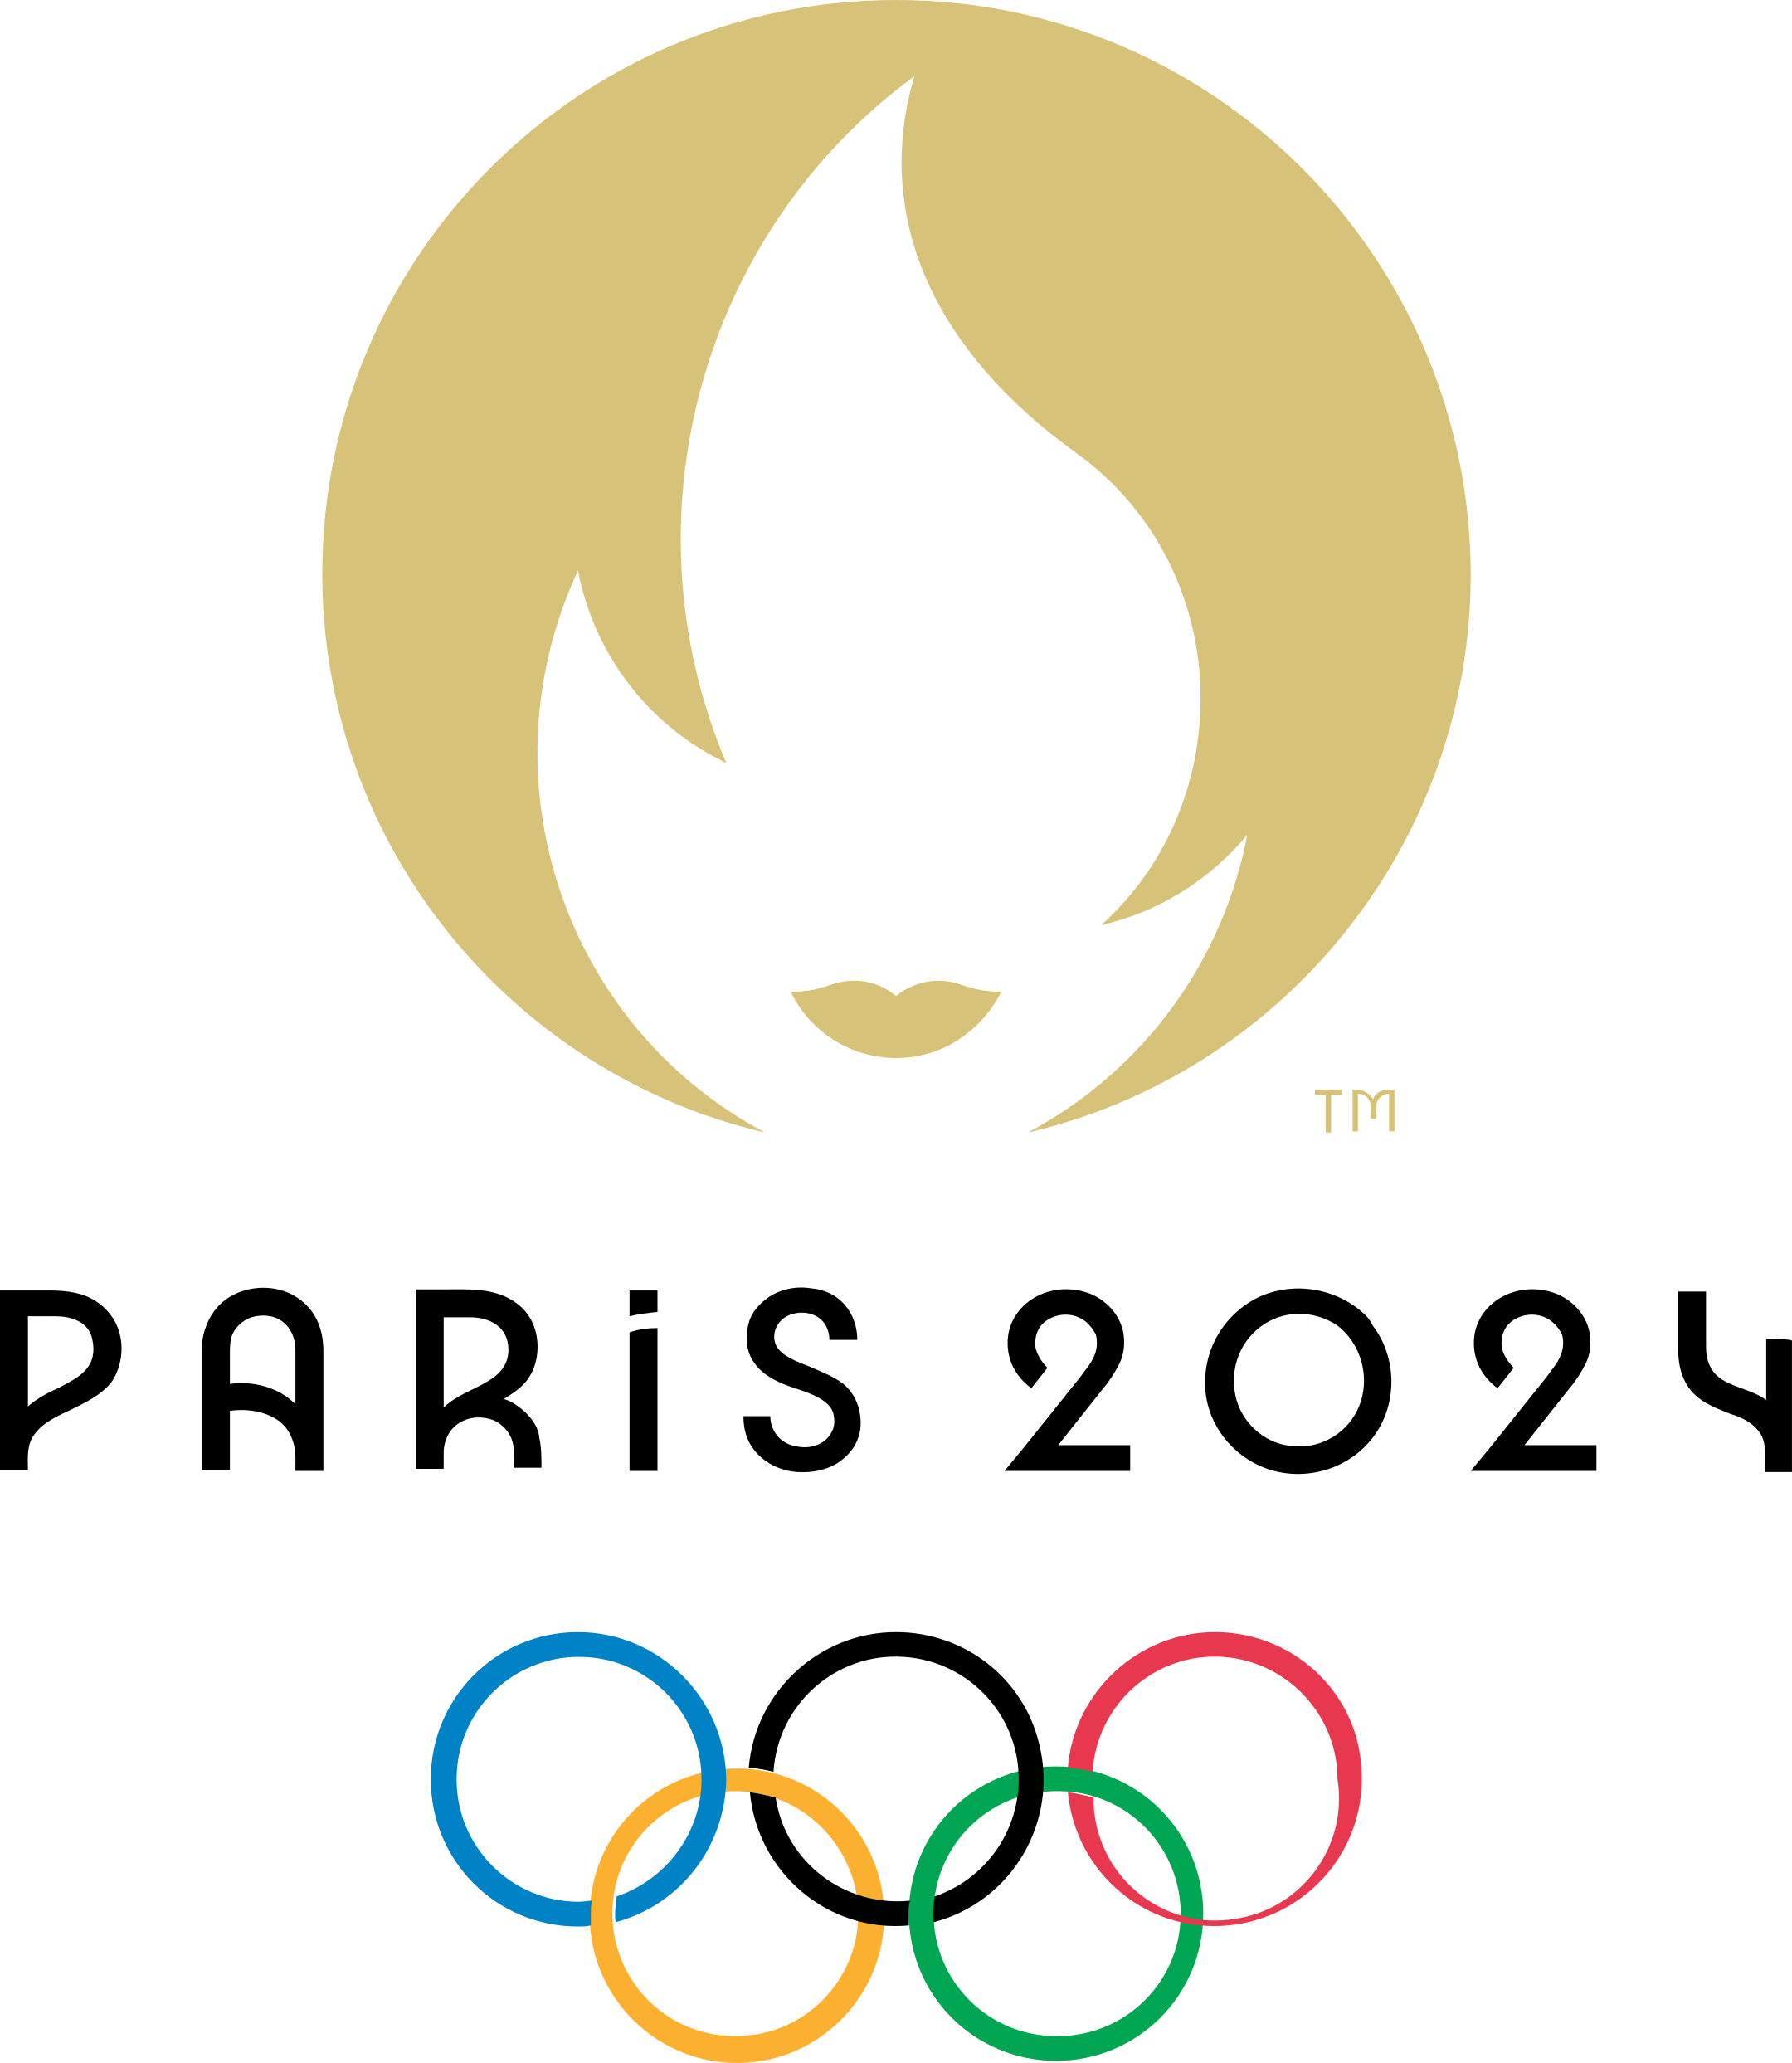 paris 2024 logo 1 - Paris 2024 Logo